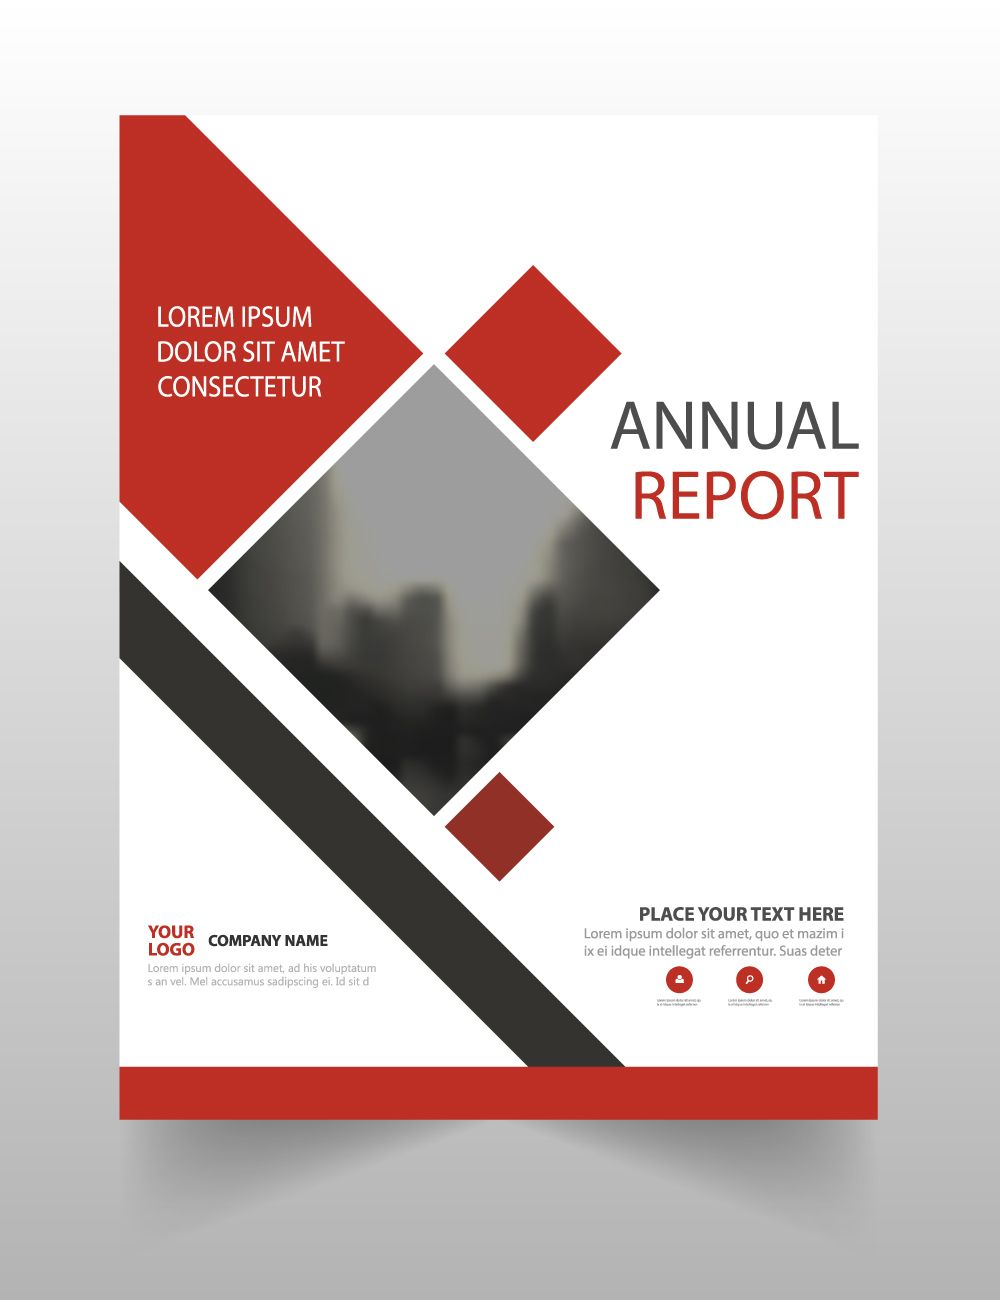 annual report brochure templates dezinemag brochure 5 annual report brochure templates dezinemag